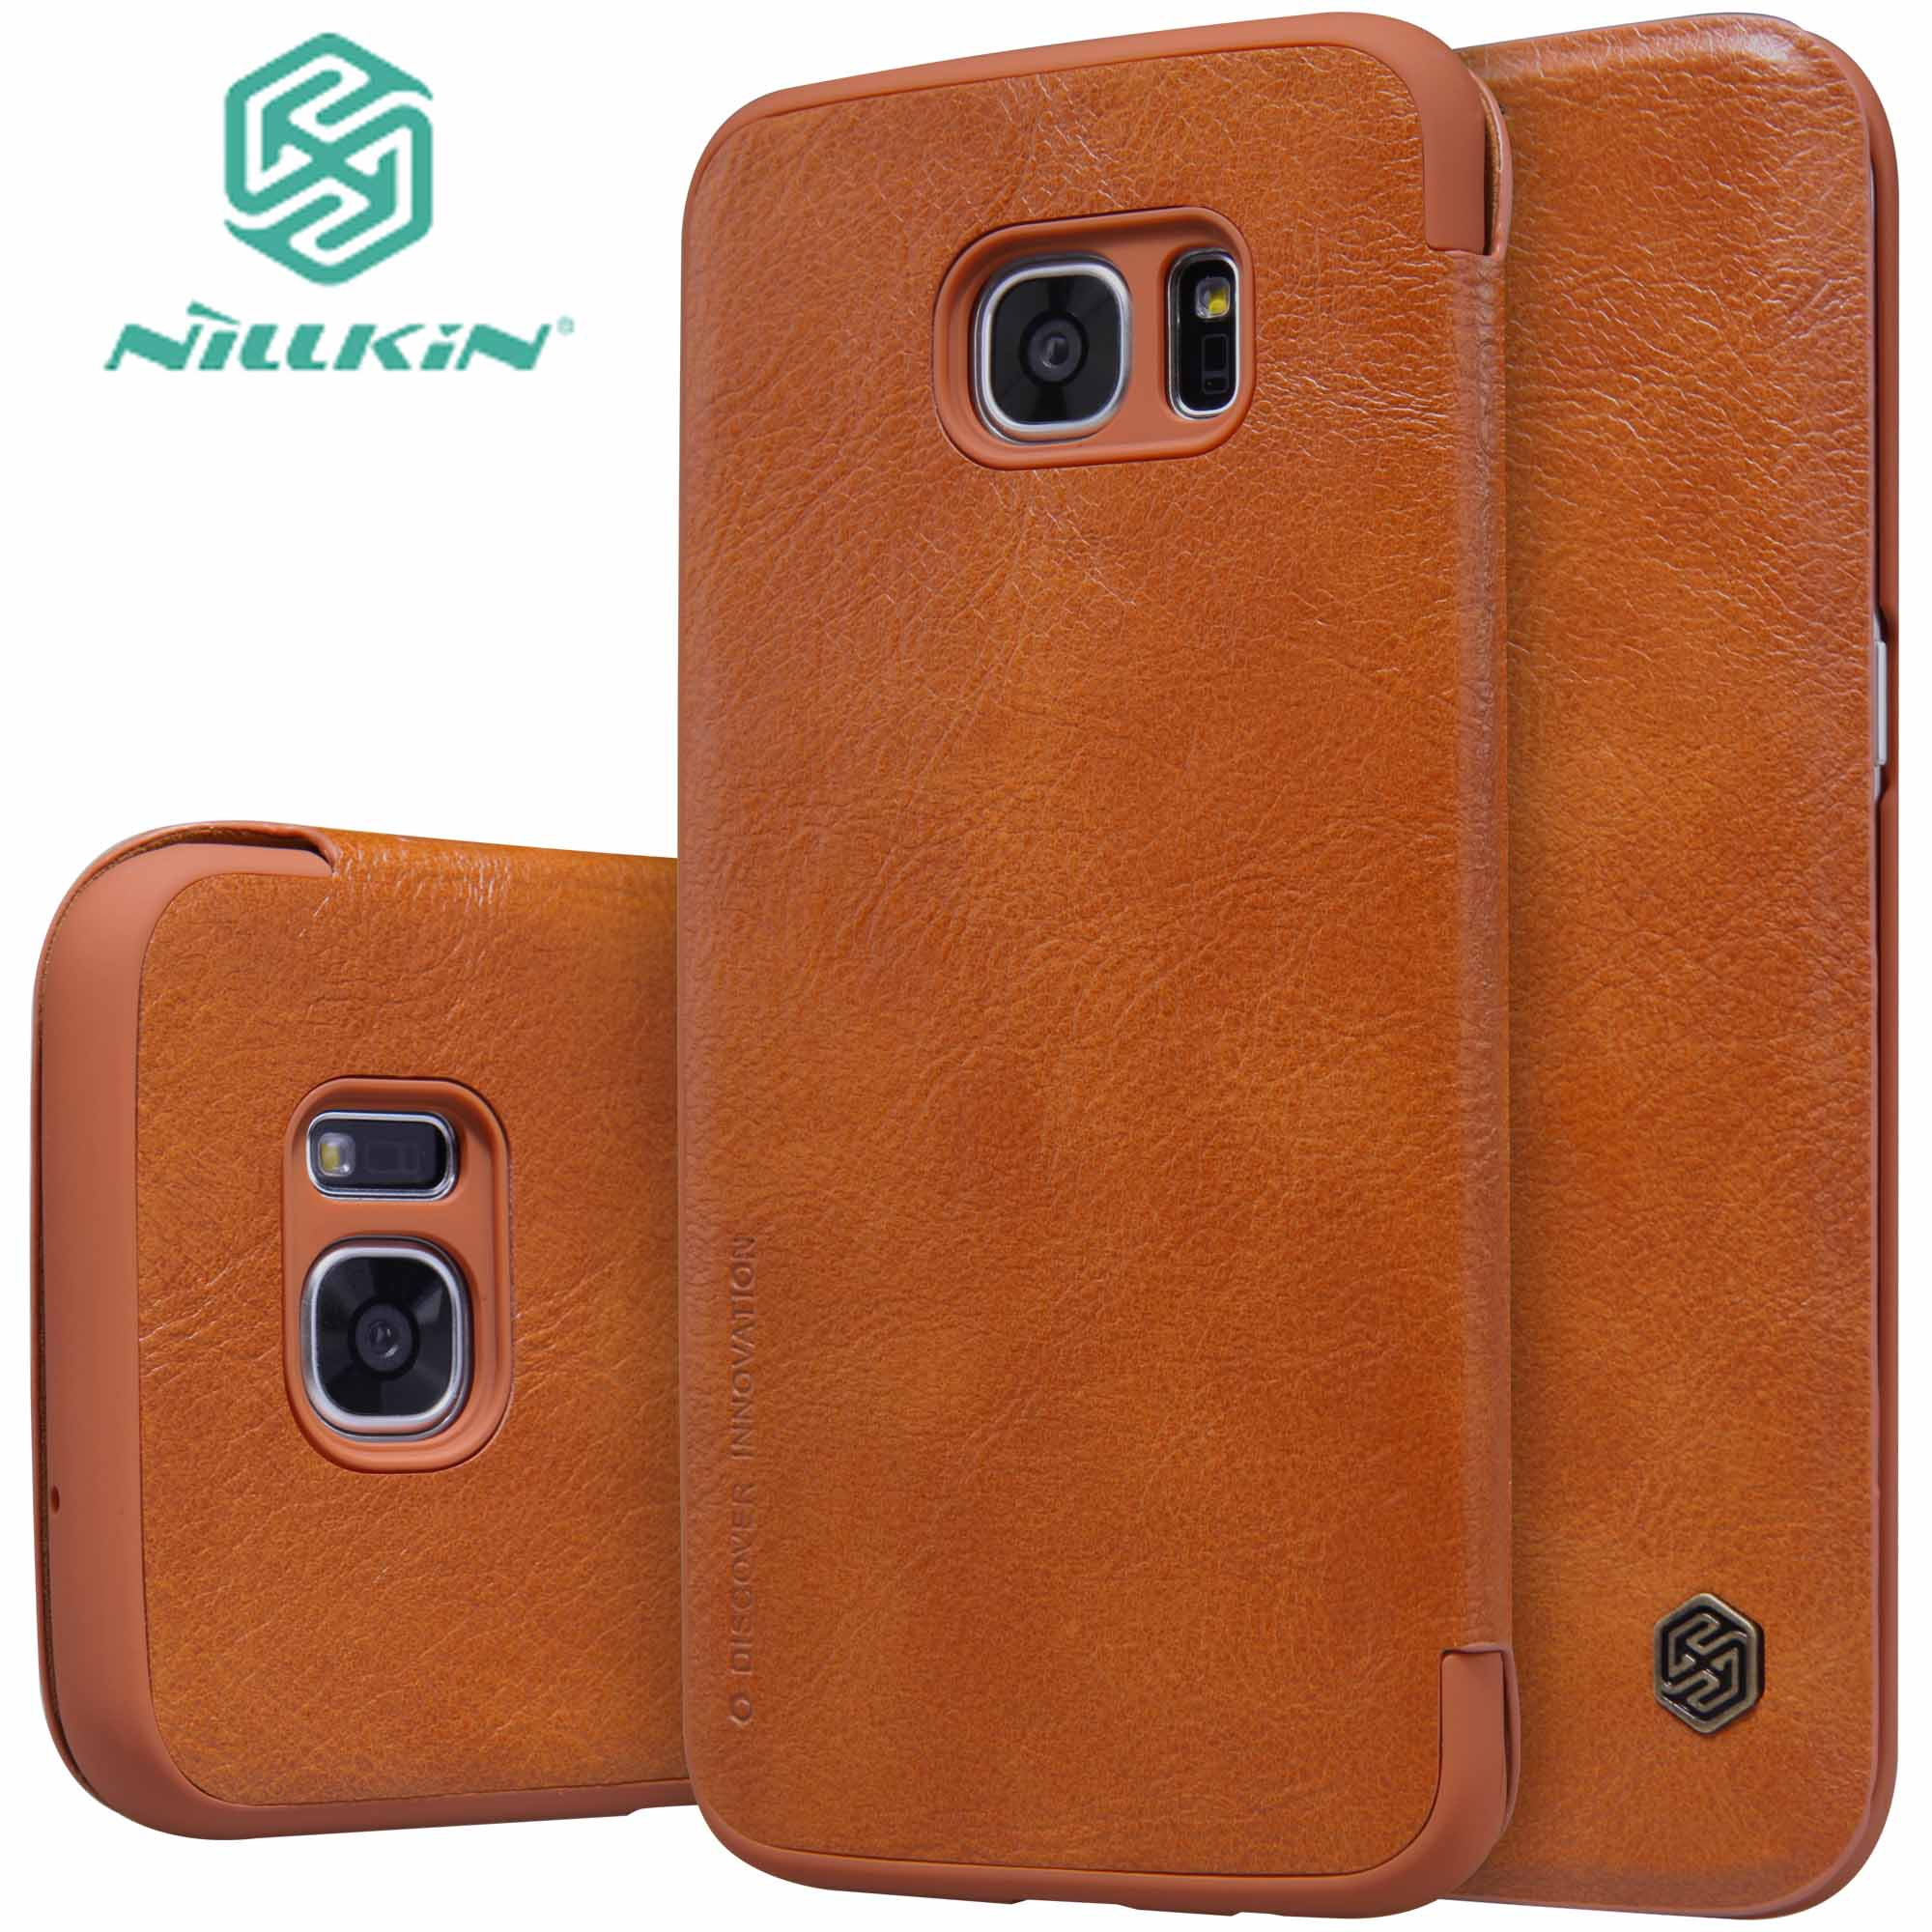 Original NILLKIN Qin Series Wallet Cover Leather Case For Samsung Galaxy S7 S7 Edge Flip Phone